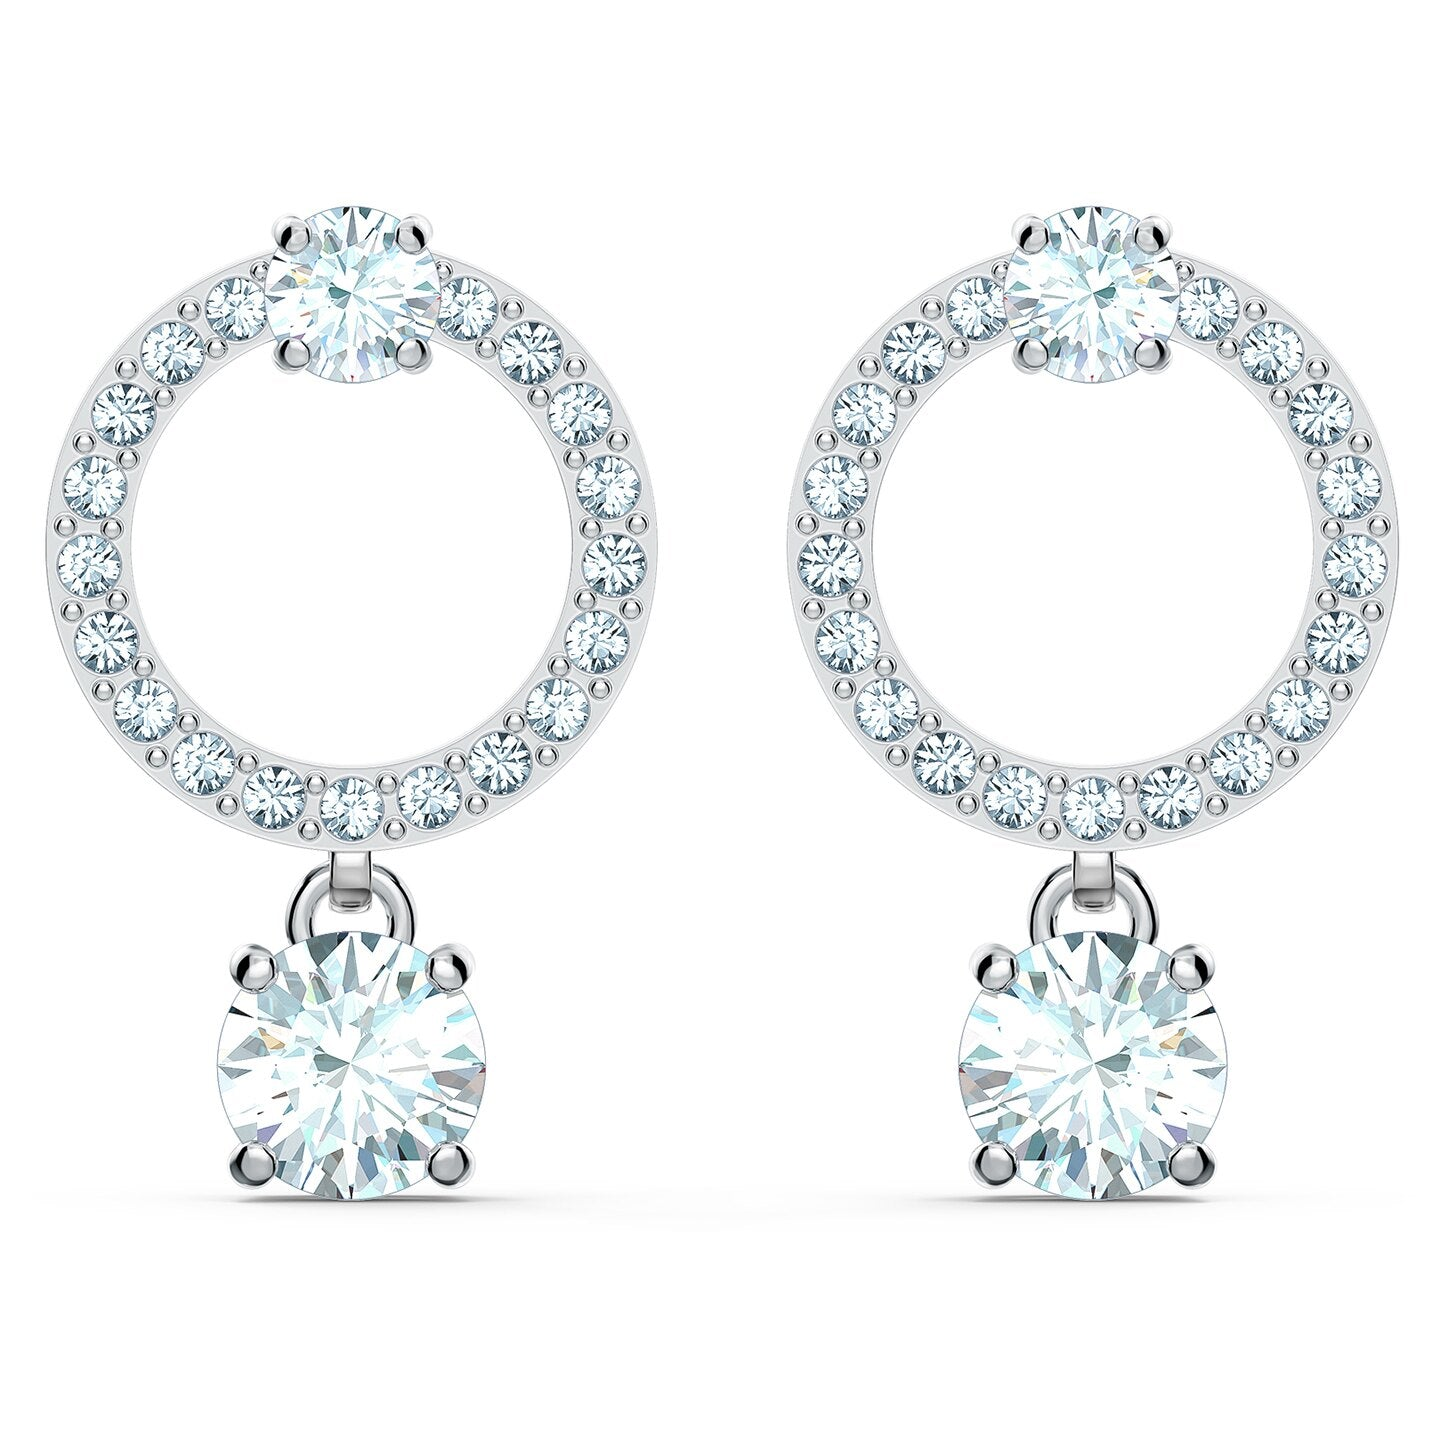 ATTRACT CIRCLE PIERCED EARRINGS, WHITE, RHODIUM PLATED